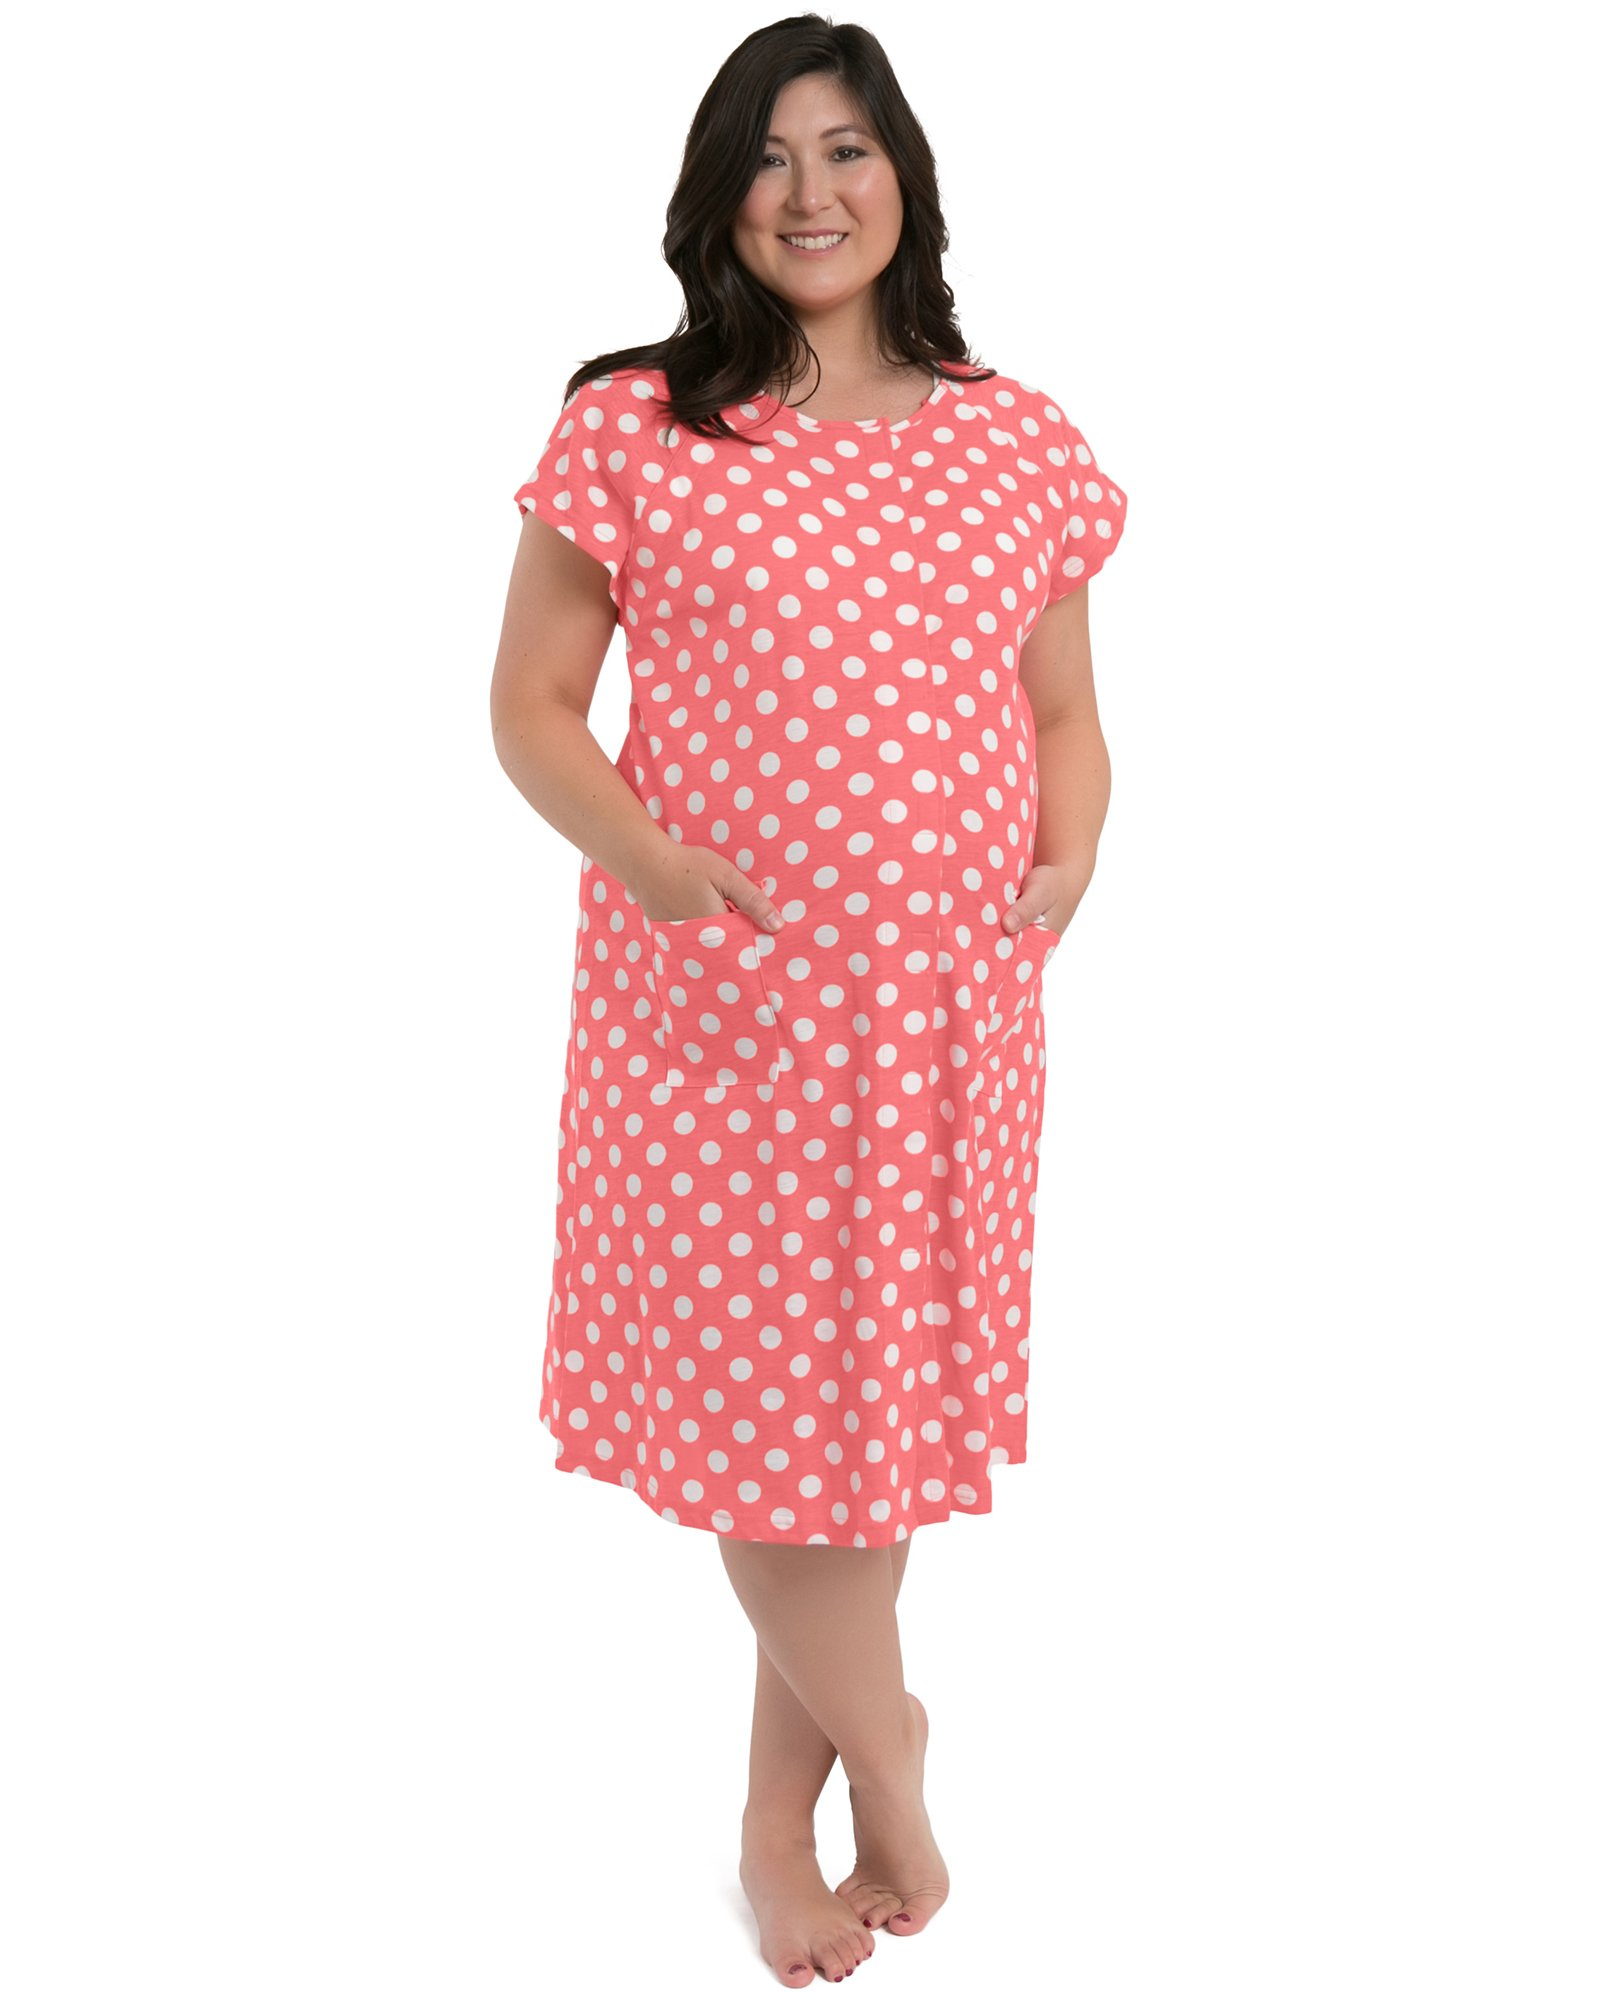 Kindred Bravely Bravely Labor and Delivery Gown - The Perfect Baby Shower Gift for Maternity/Hospital/Nursing (Pink Polka Dots, XL/XXL)